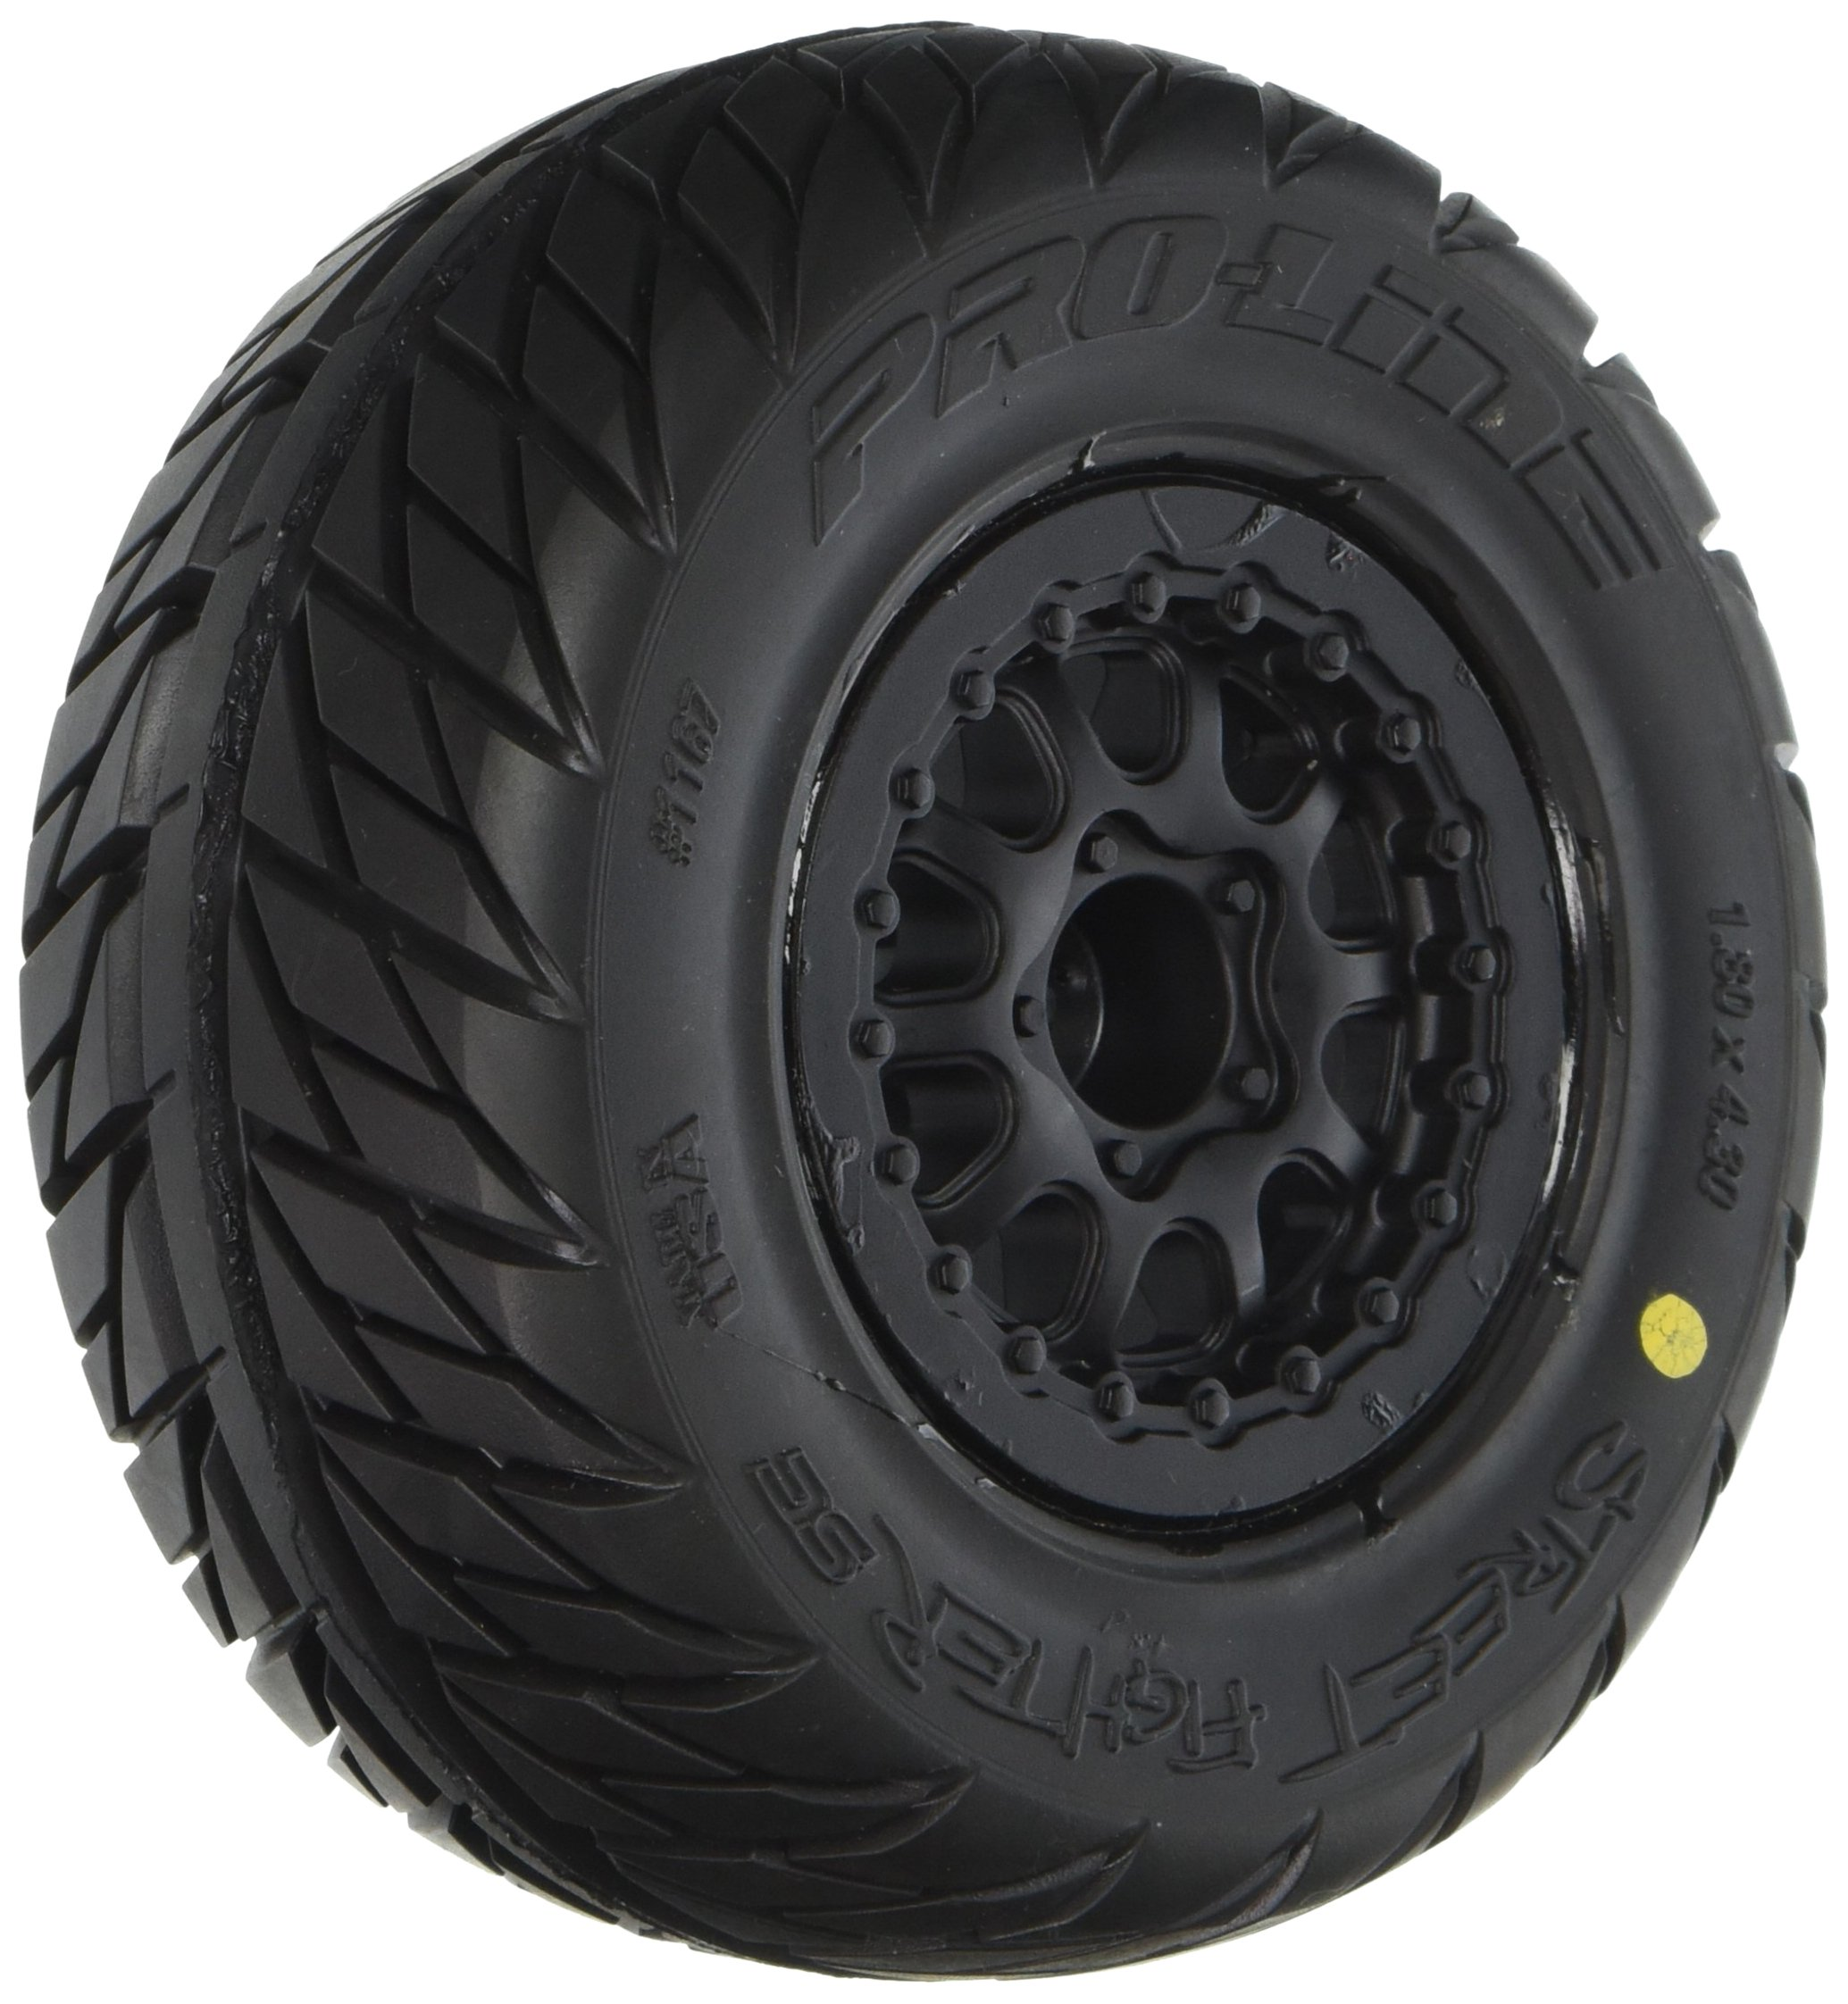 Pro-Line Racing 1167-17 Street Fighter SC 2.2''/3.0'' Tires Mounted on Renegade Black Wheels